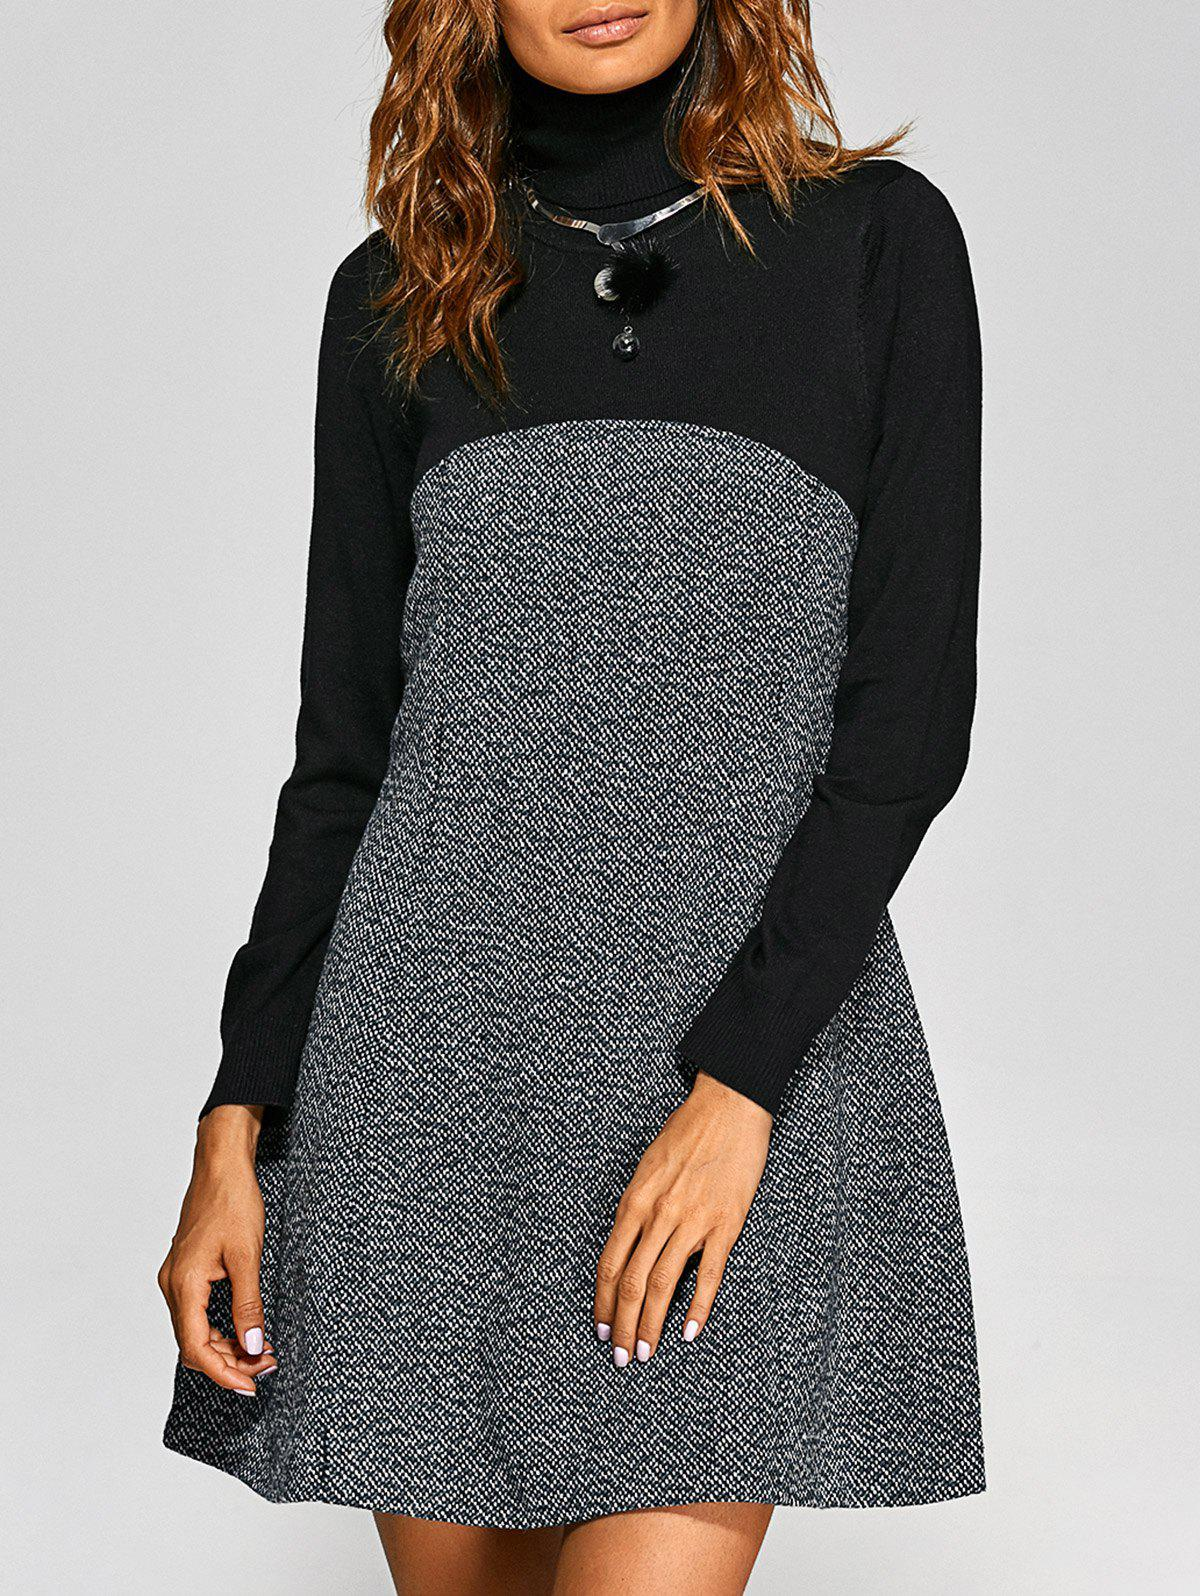 Buy Turtle Neck Knit-Paneled Textured Dress